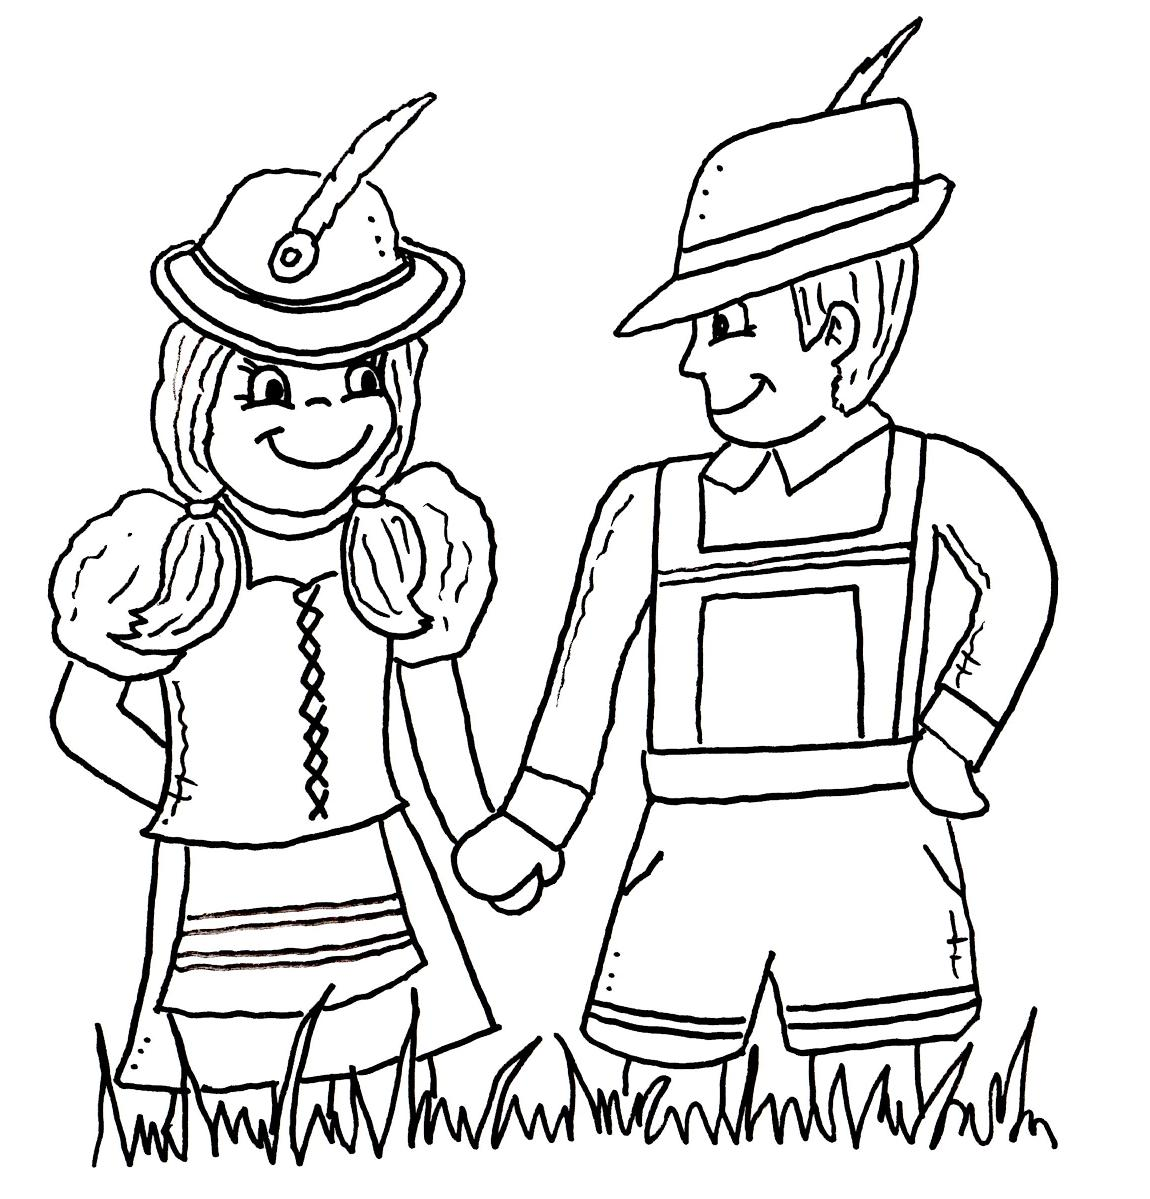 coloring pages for germany - photo#8